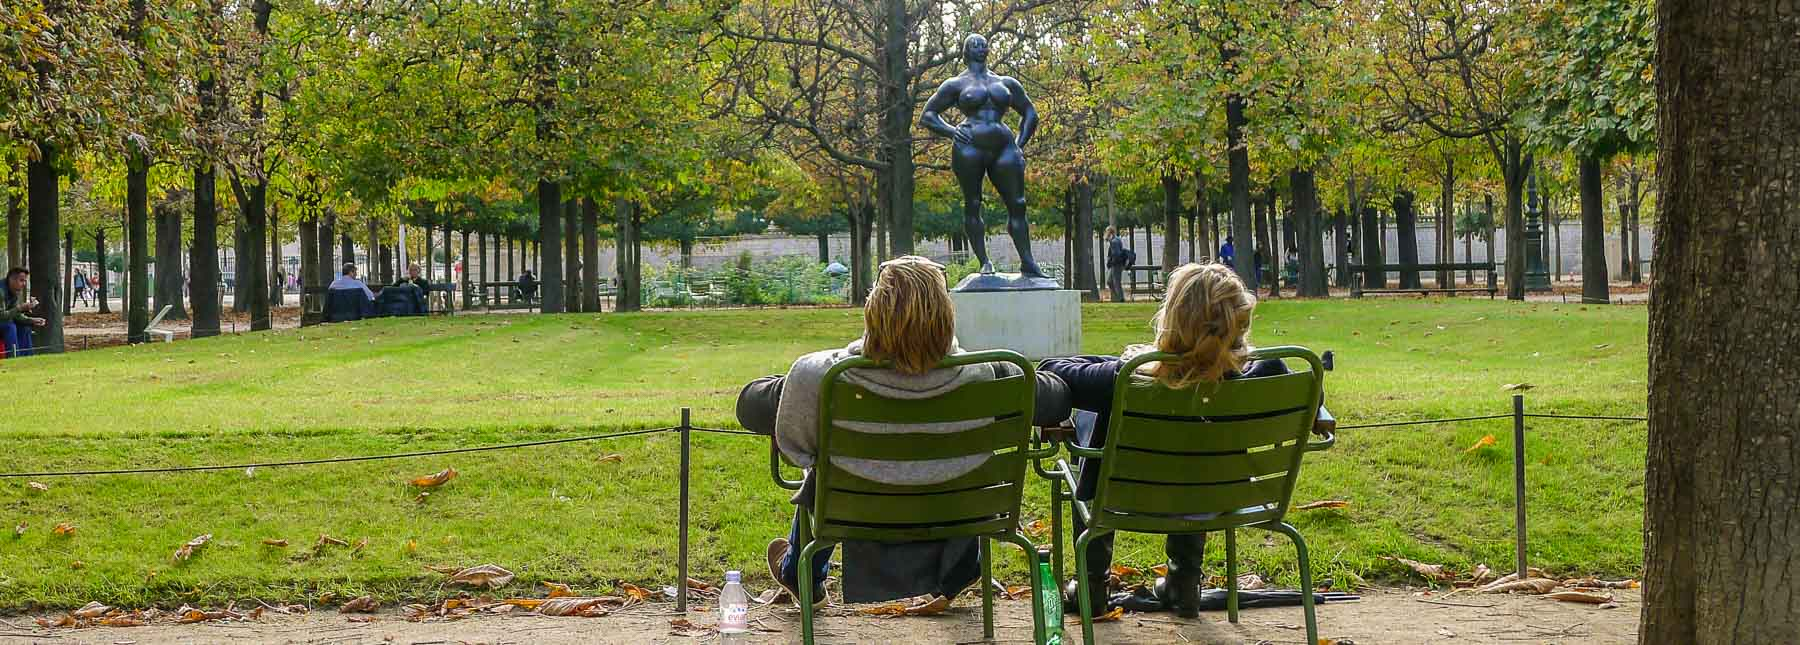 75 Tips For A Great Vacation In Paris Earth Trippers # Table De Jardin Simply Market